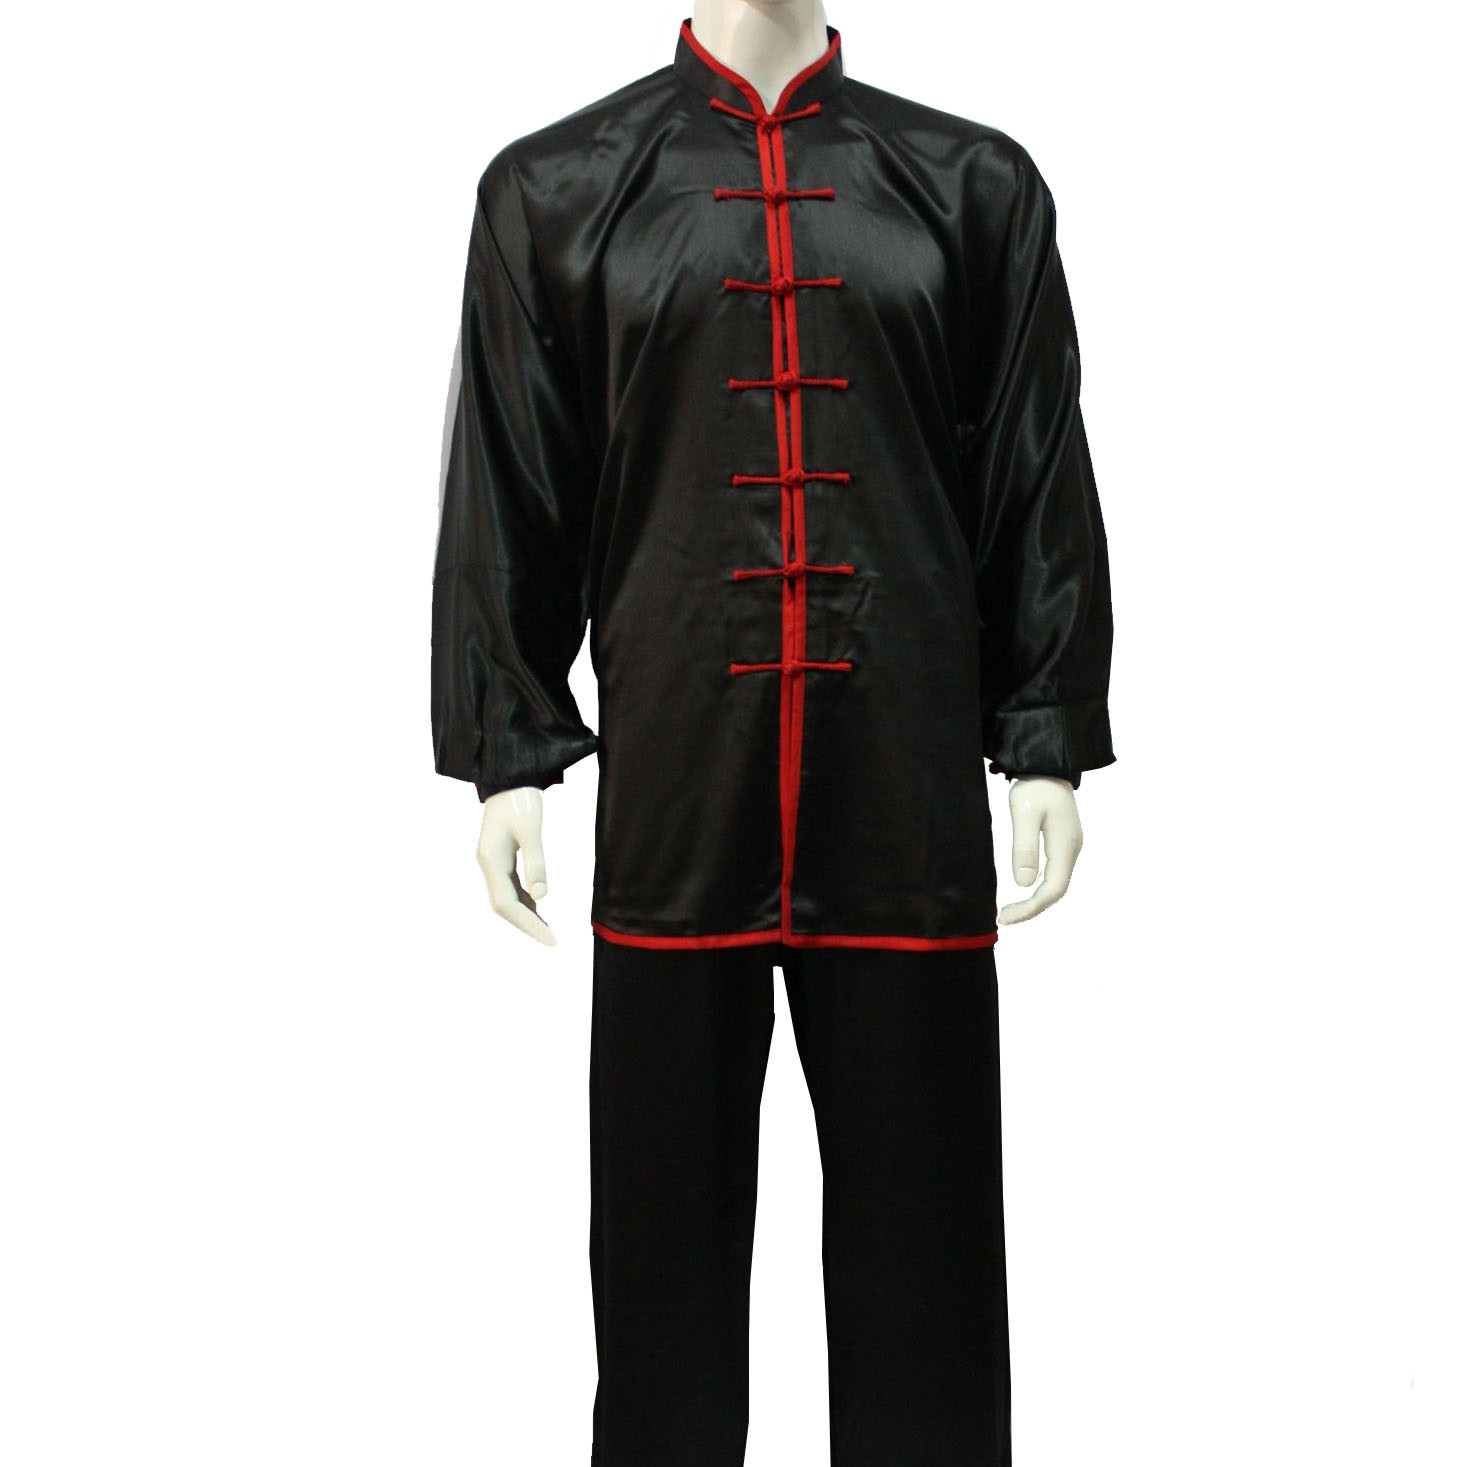 Personnalized Tai Chi and Kung Fu Uniform Imitation Silk